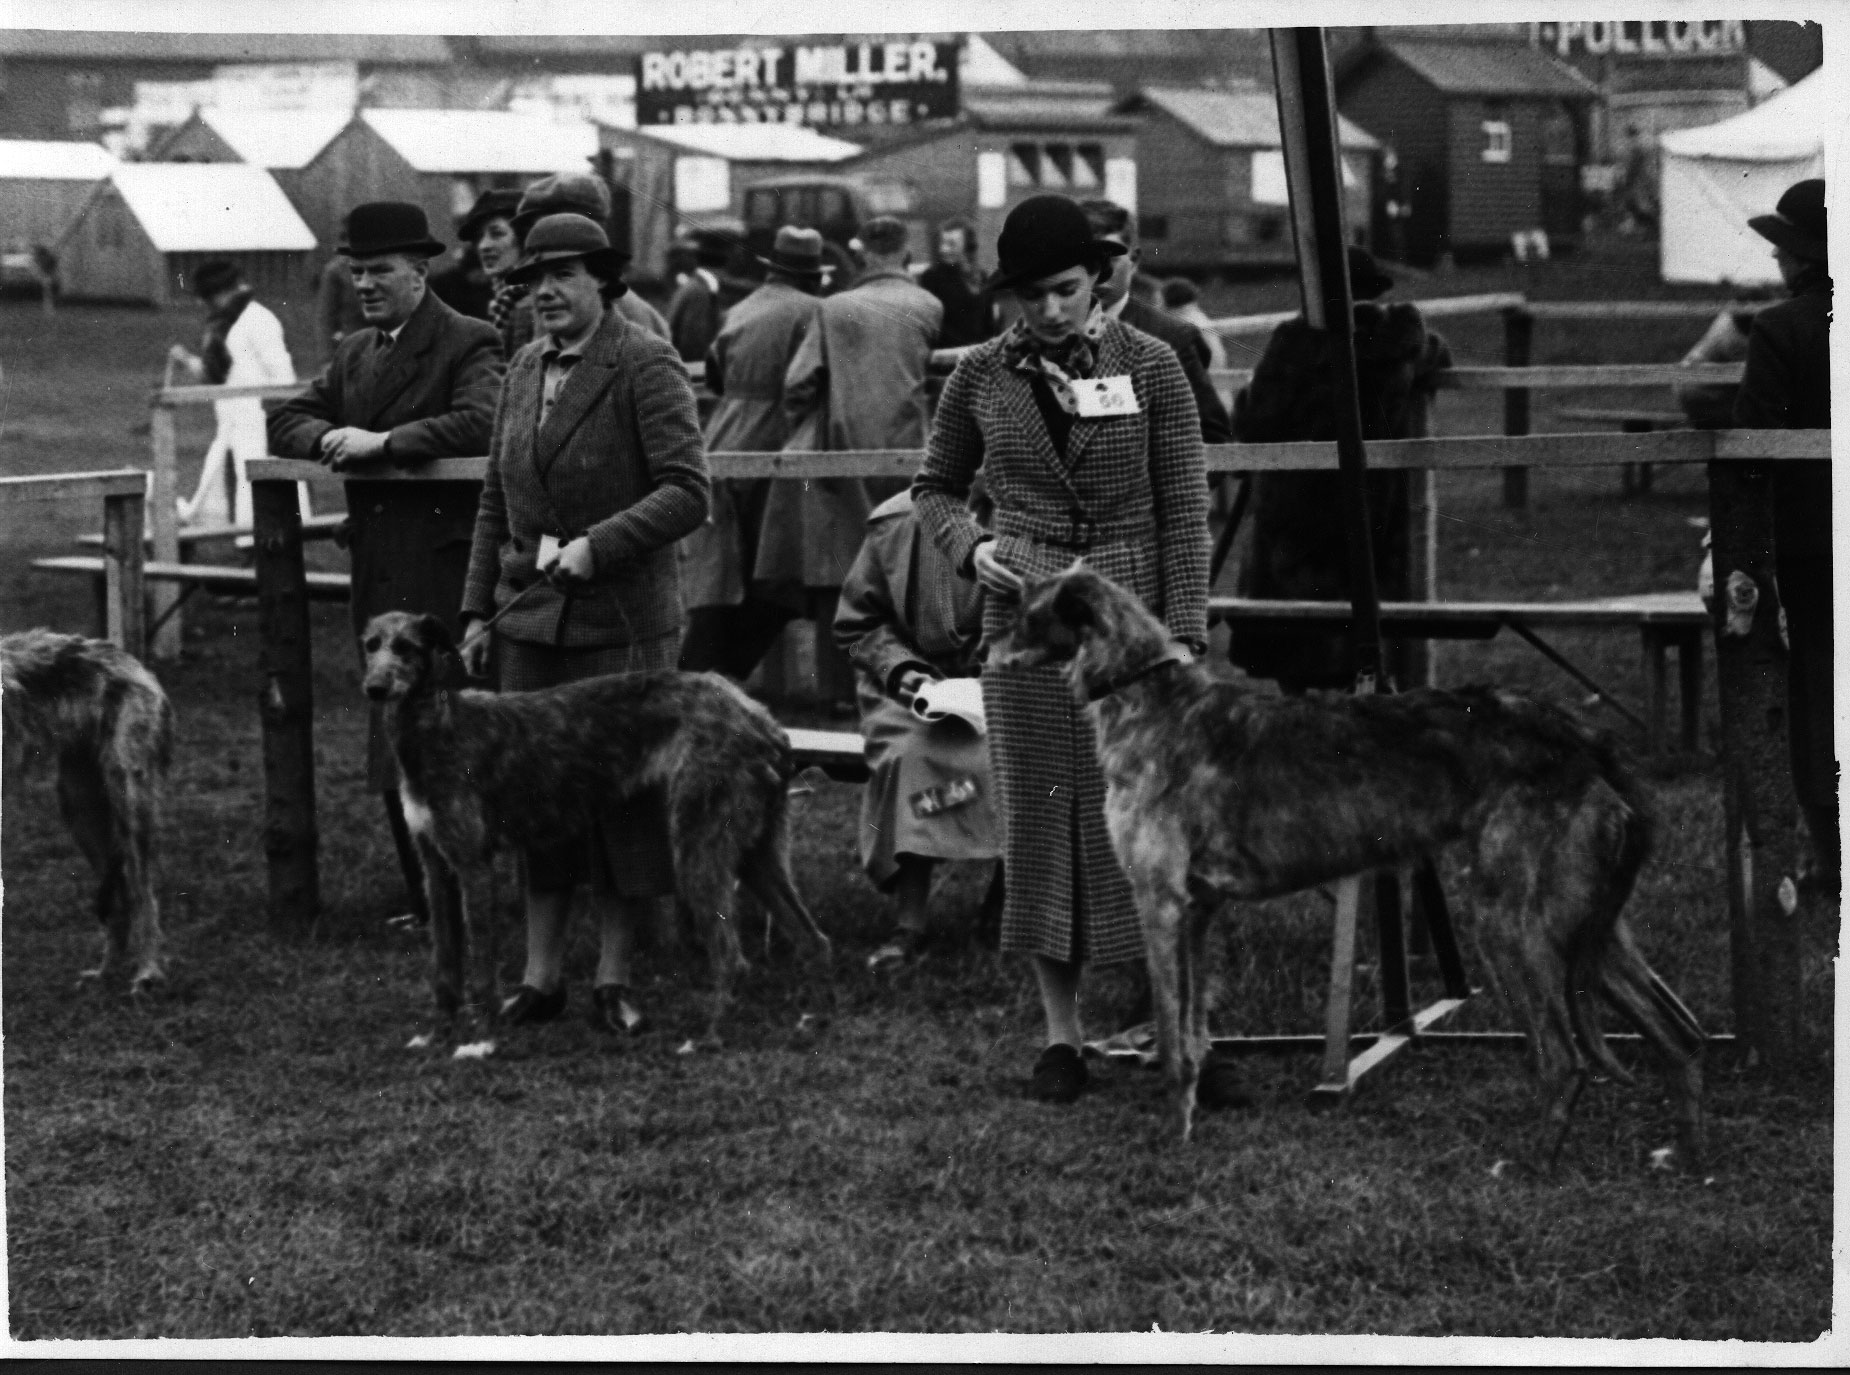 Ayr show, 1936 Nora of Enterkine, b. 1930 Glenmoristan Bruce x Fiona of Enterkine